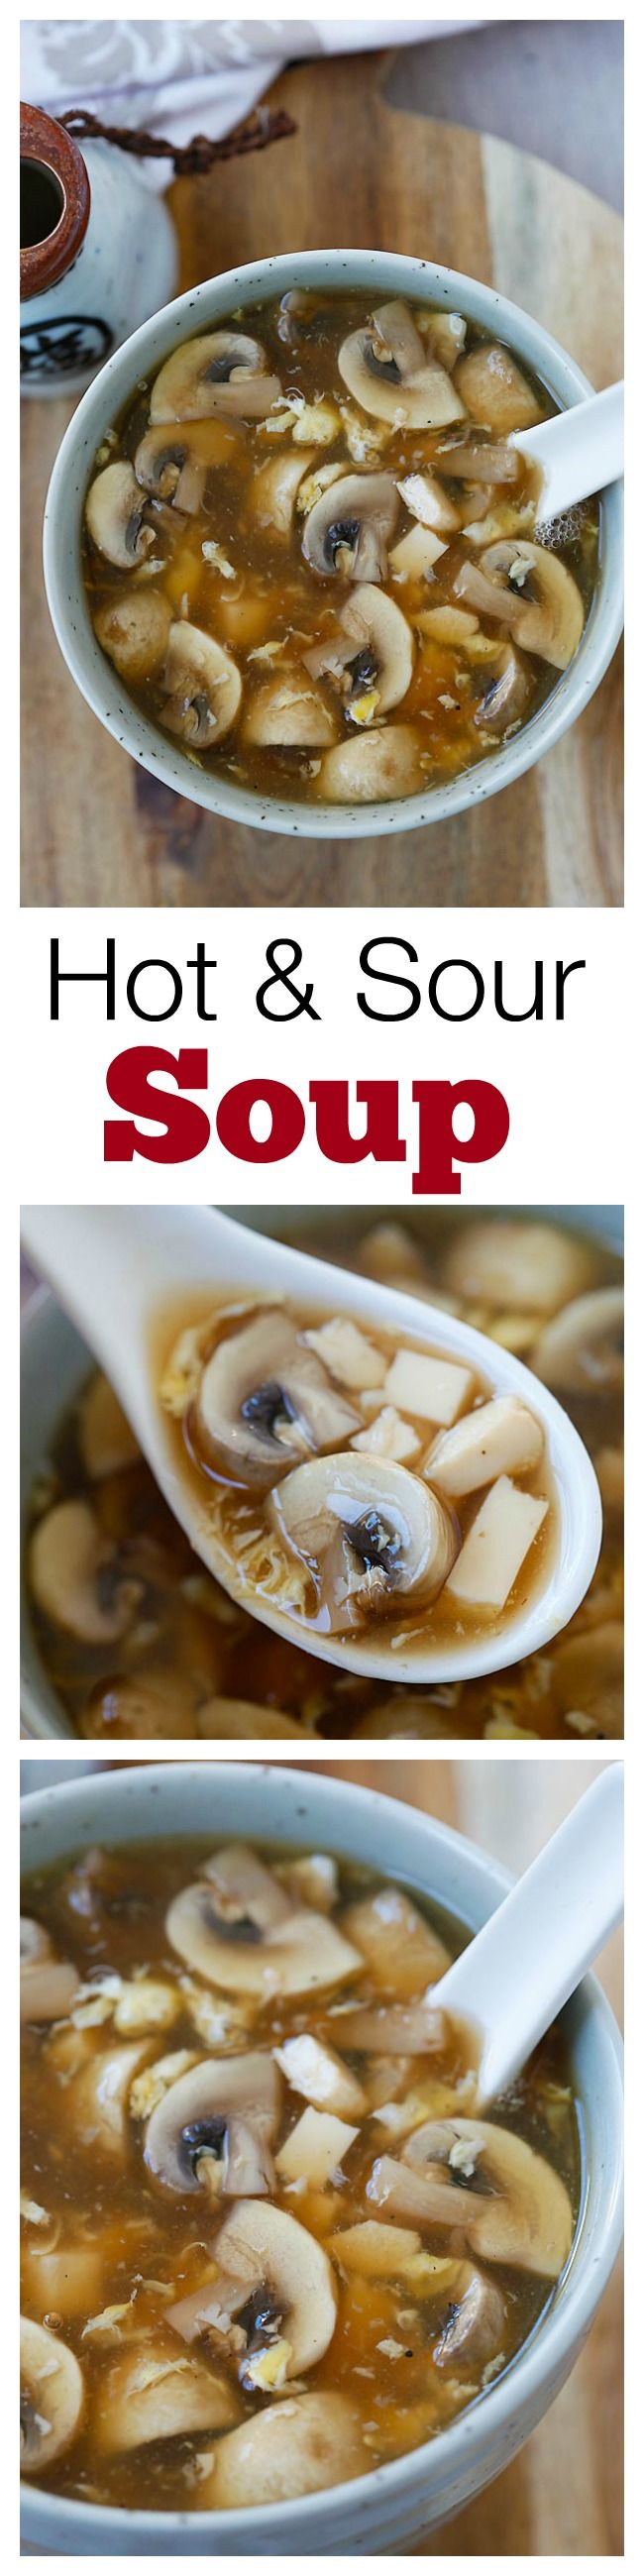 Hot and Sour Soup – Make with simple ingredients, takes 15 minutes to prepare / rasamalaysia.com